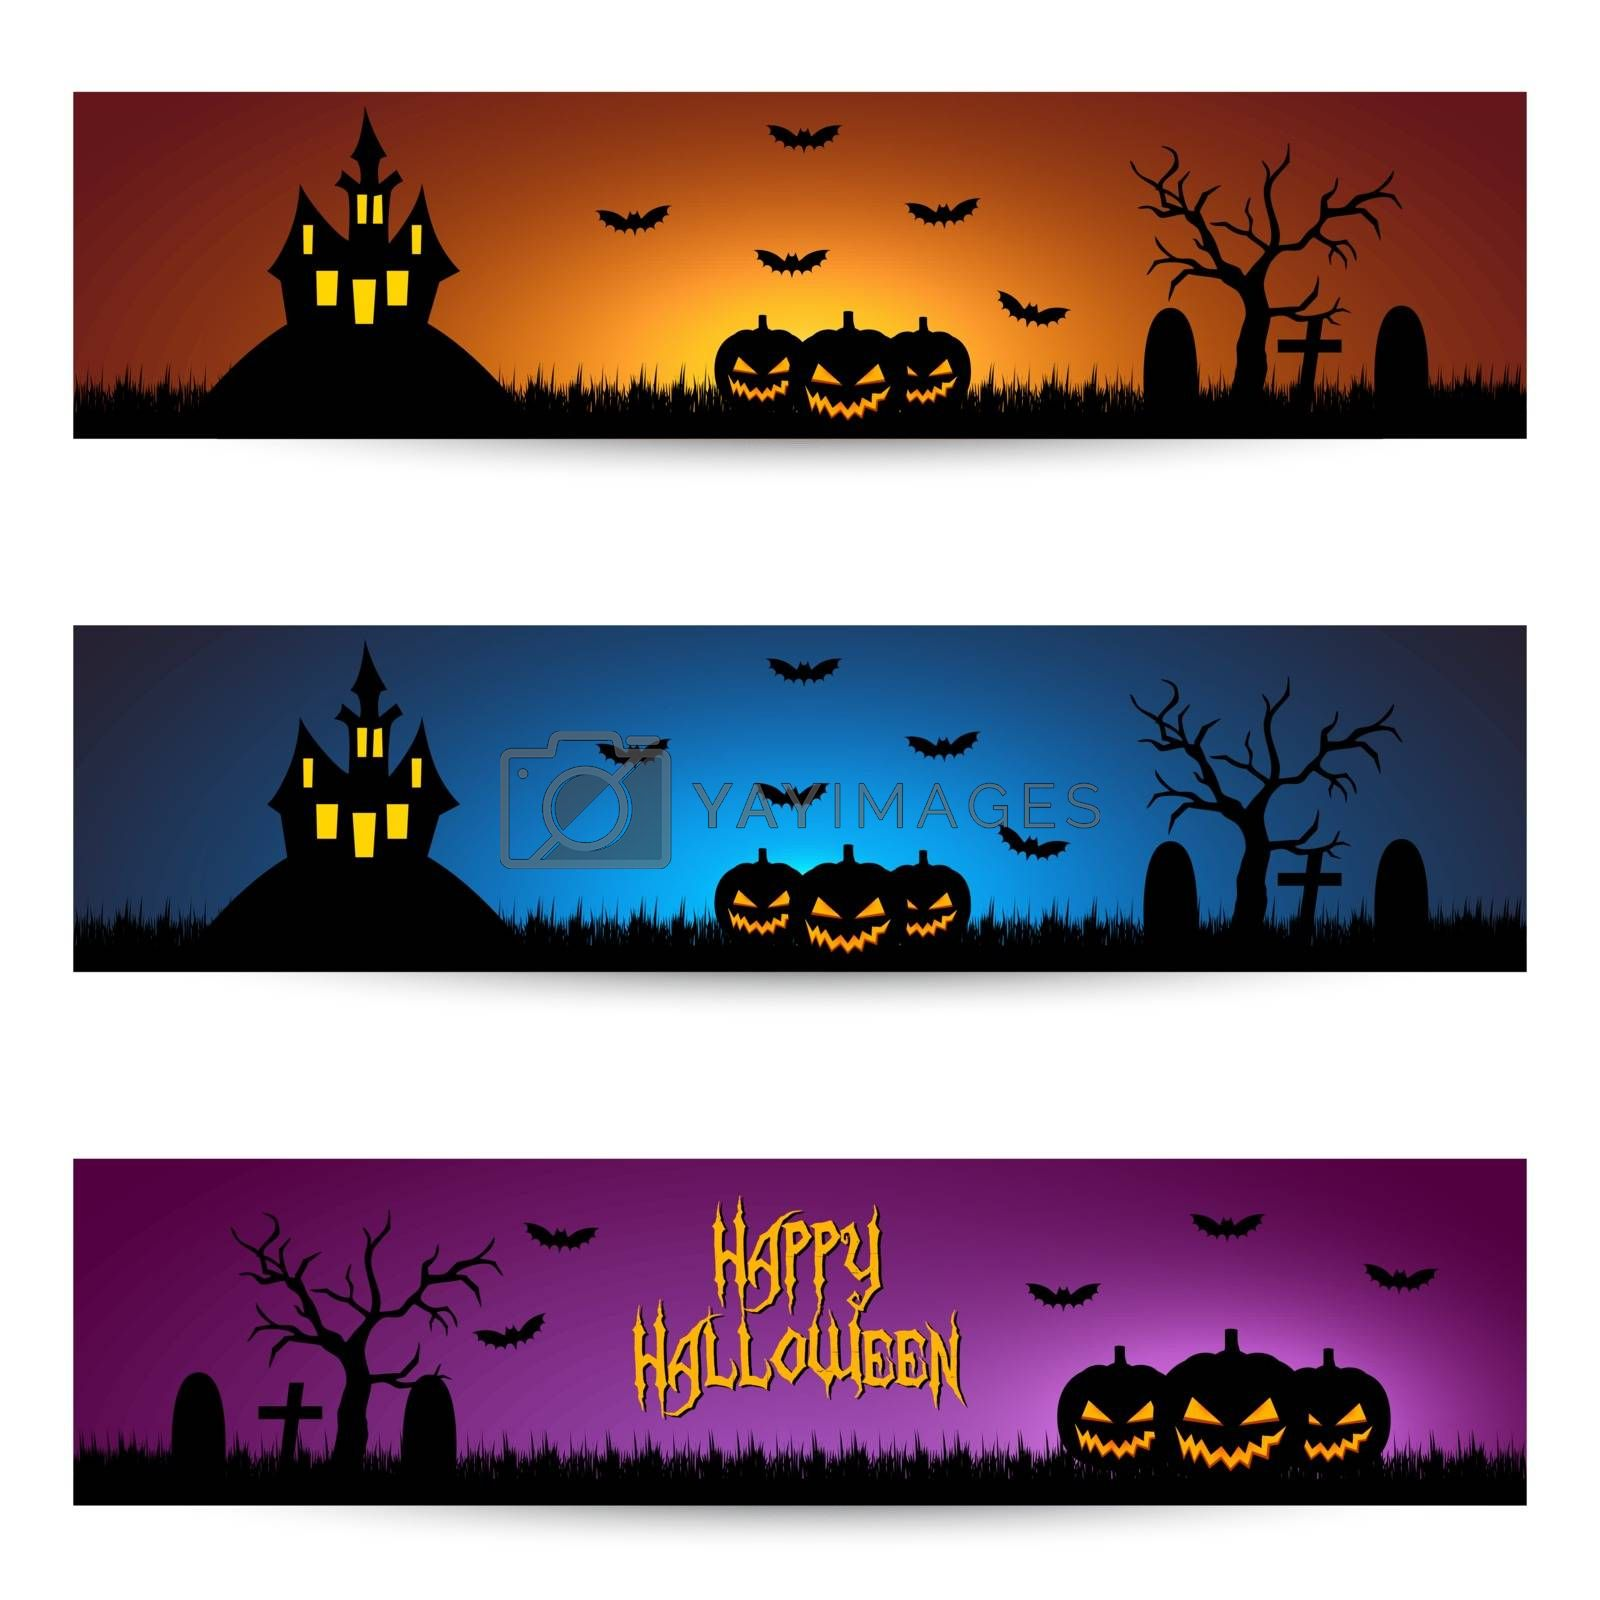 Royalty free image of Halloween banners by simo988